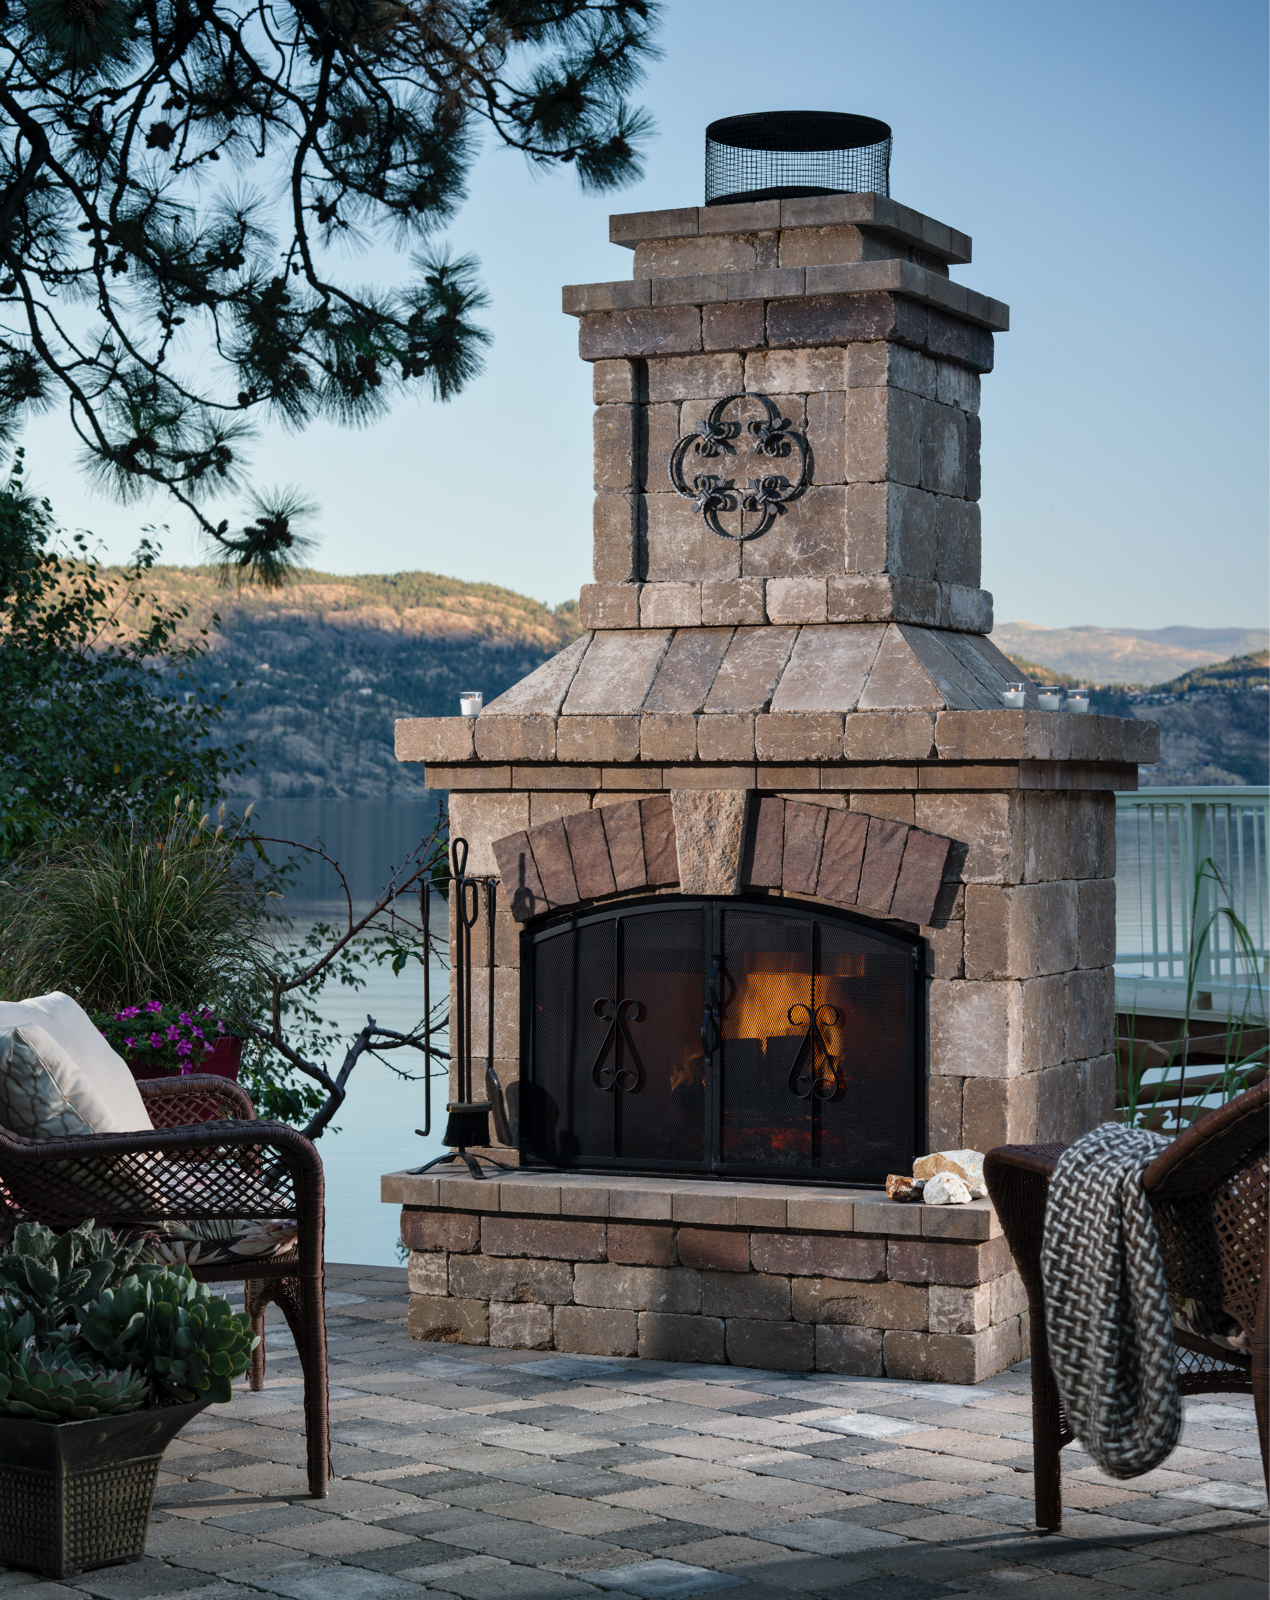 Belgard Pavers Brighton Outdoor Elements Fireplace